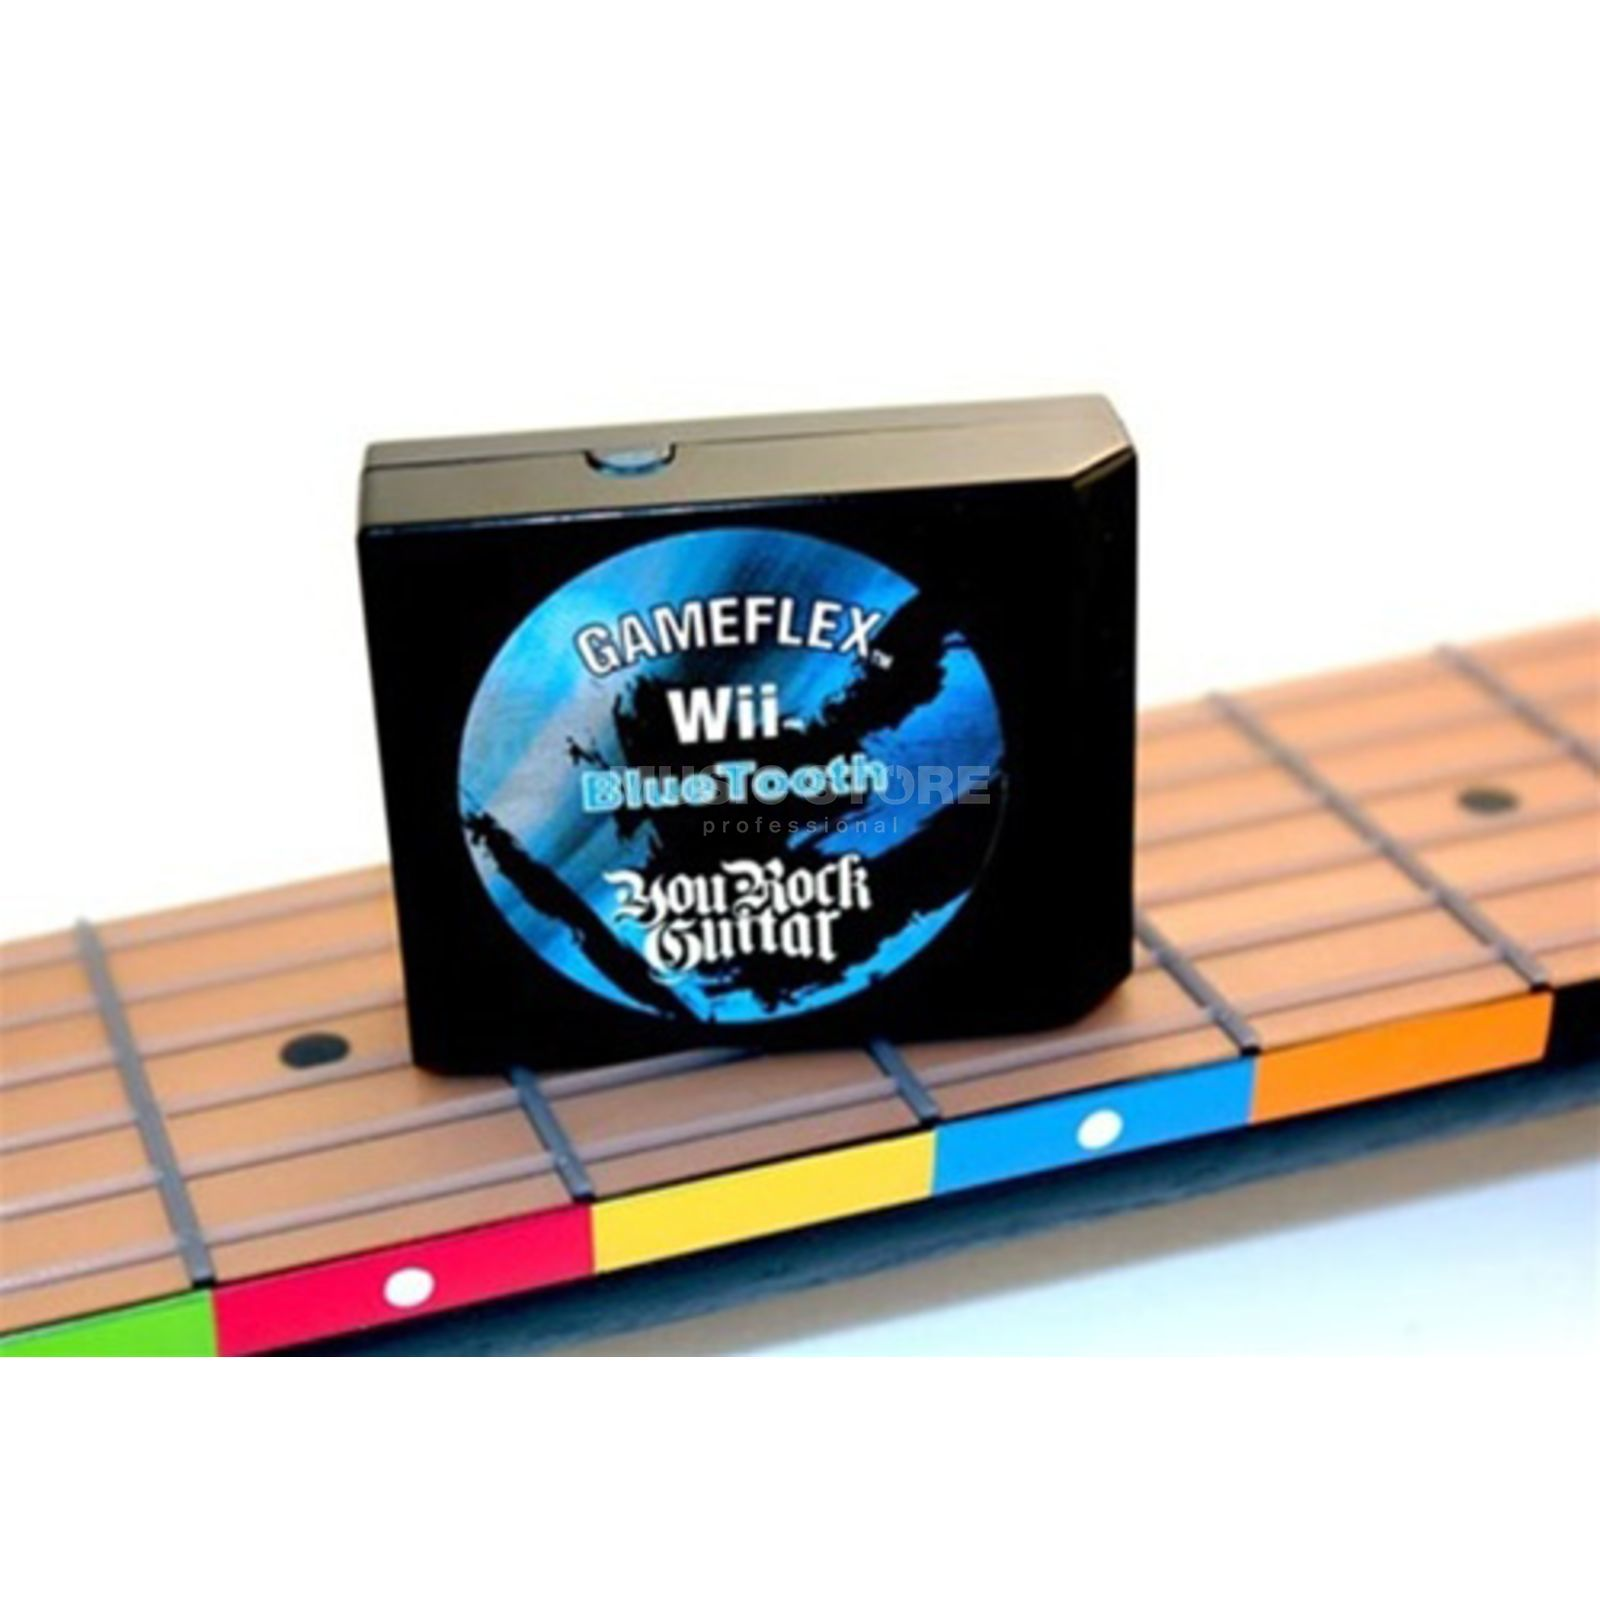 You Rock Guitar Gameflex - Cartridge for Wii You Rock Guitar / YRG103 Produktbillede